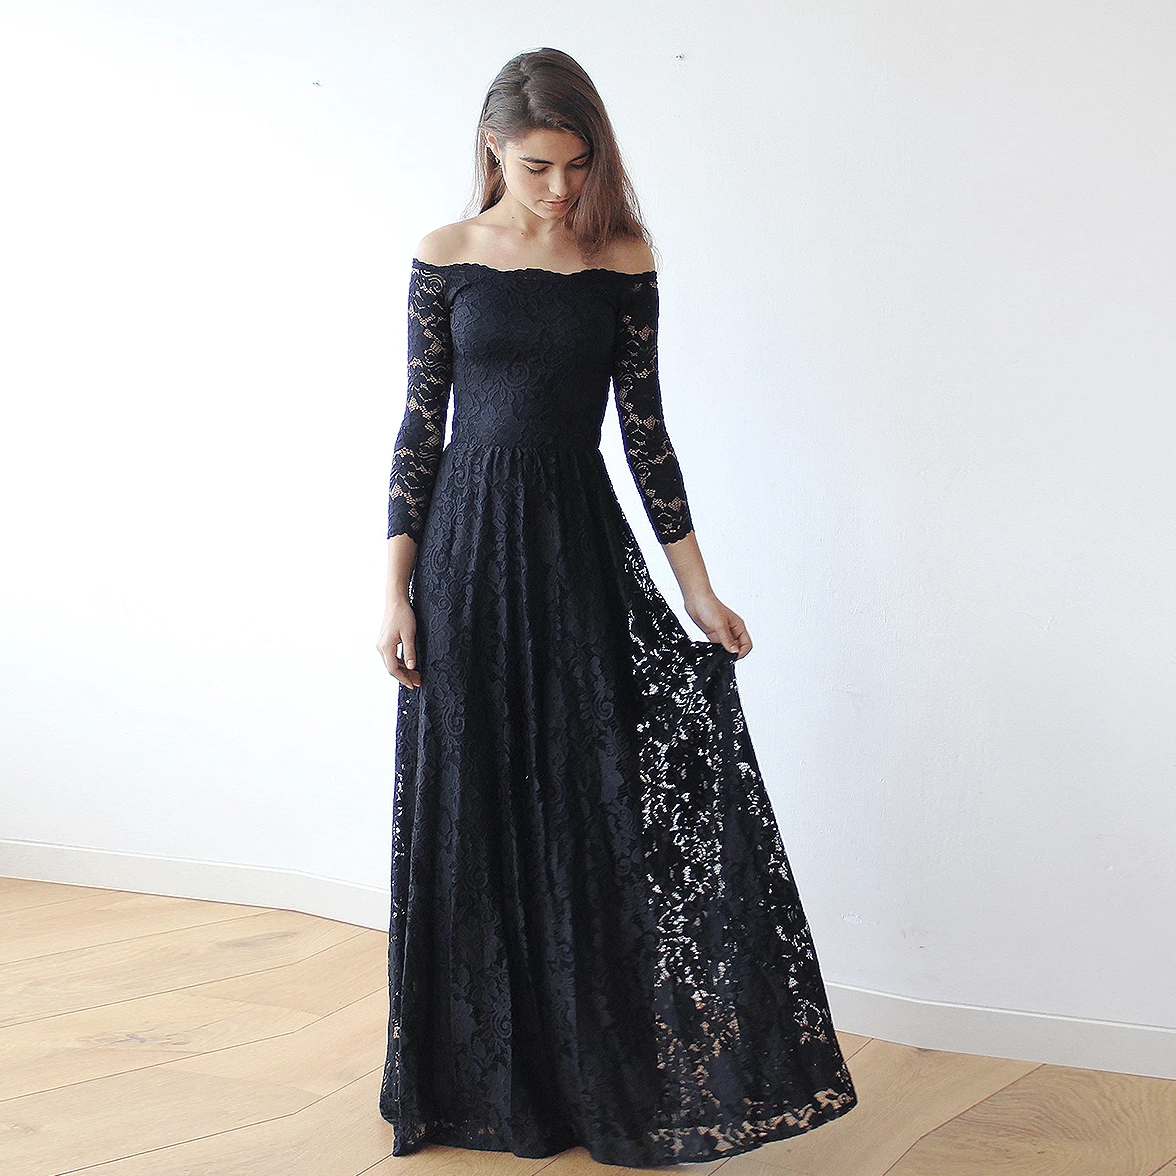 45e0c9fd4d4711 Off-The-Shoulder Black Floral Lace Long Sleeve Maxi Dress 1119 -  Blushfashion ...